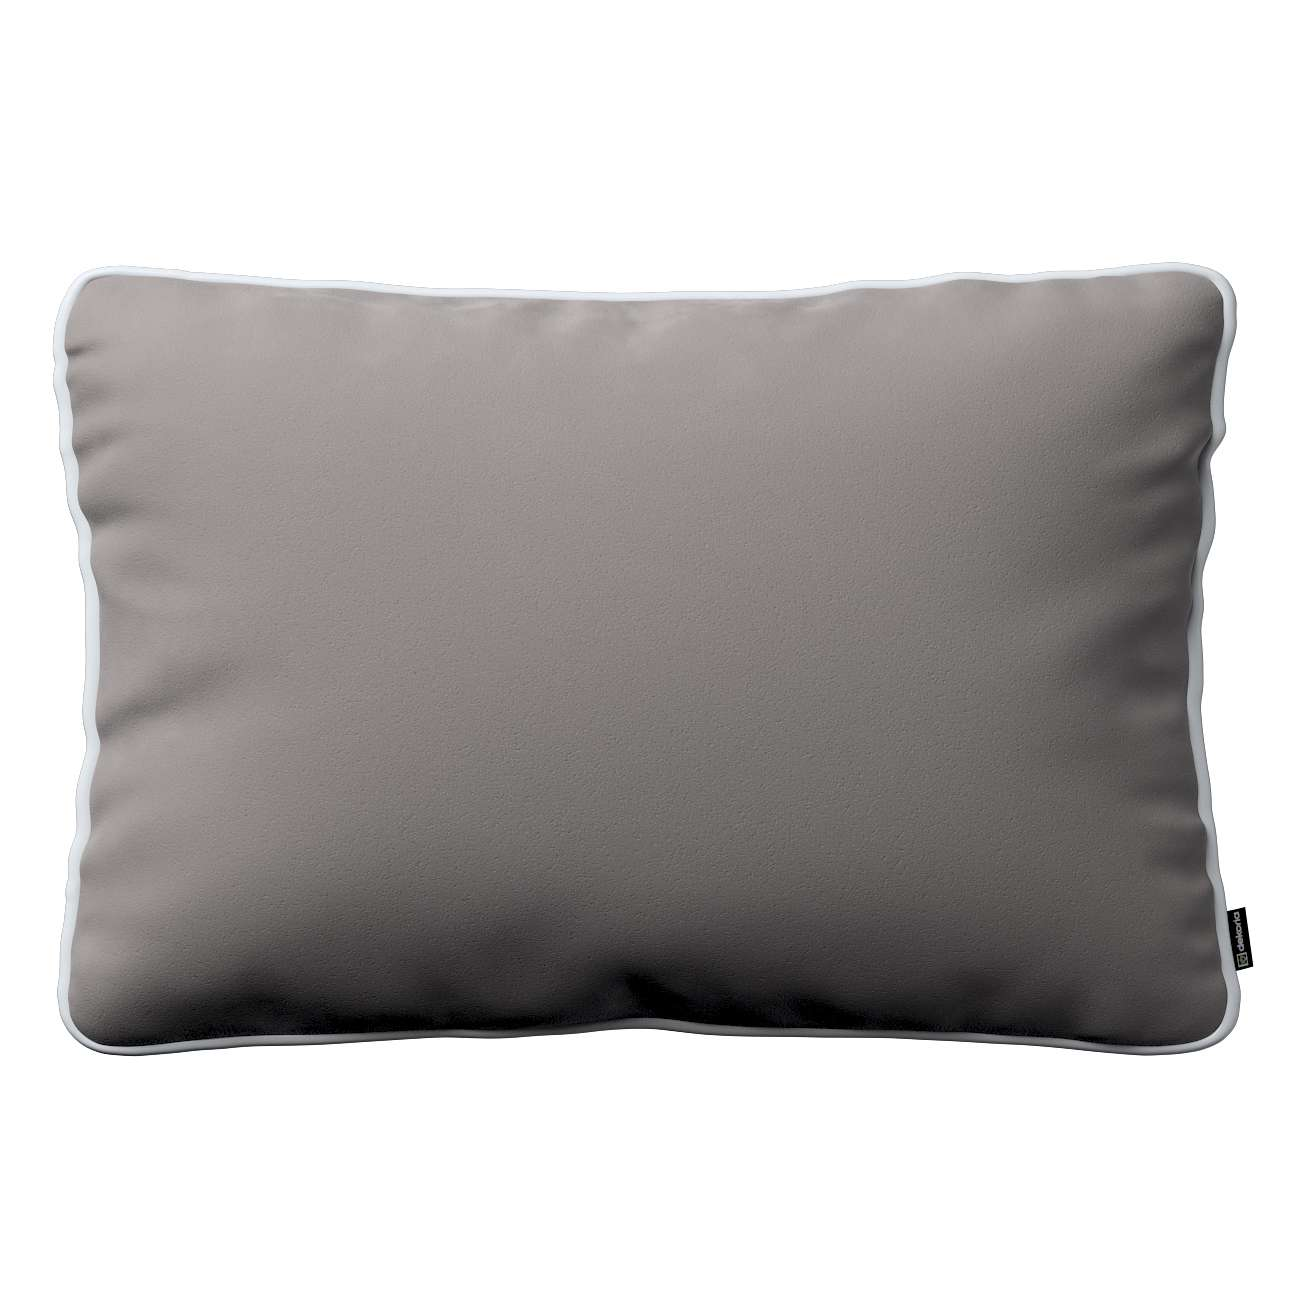 Laura rectangular velvet cushion cover with piping in collection Velvet, fabric: 704-11